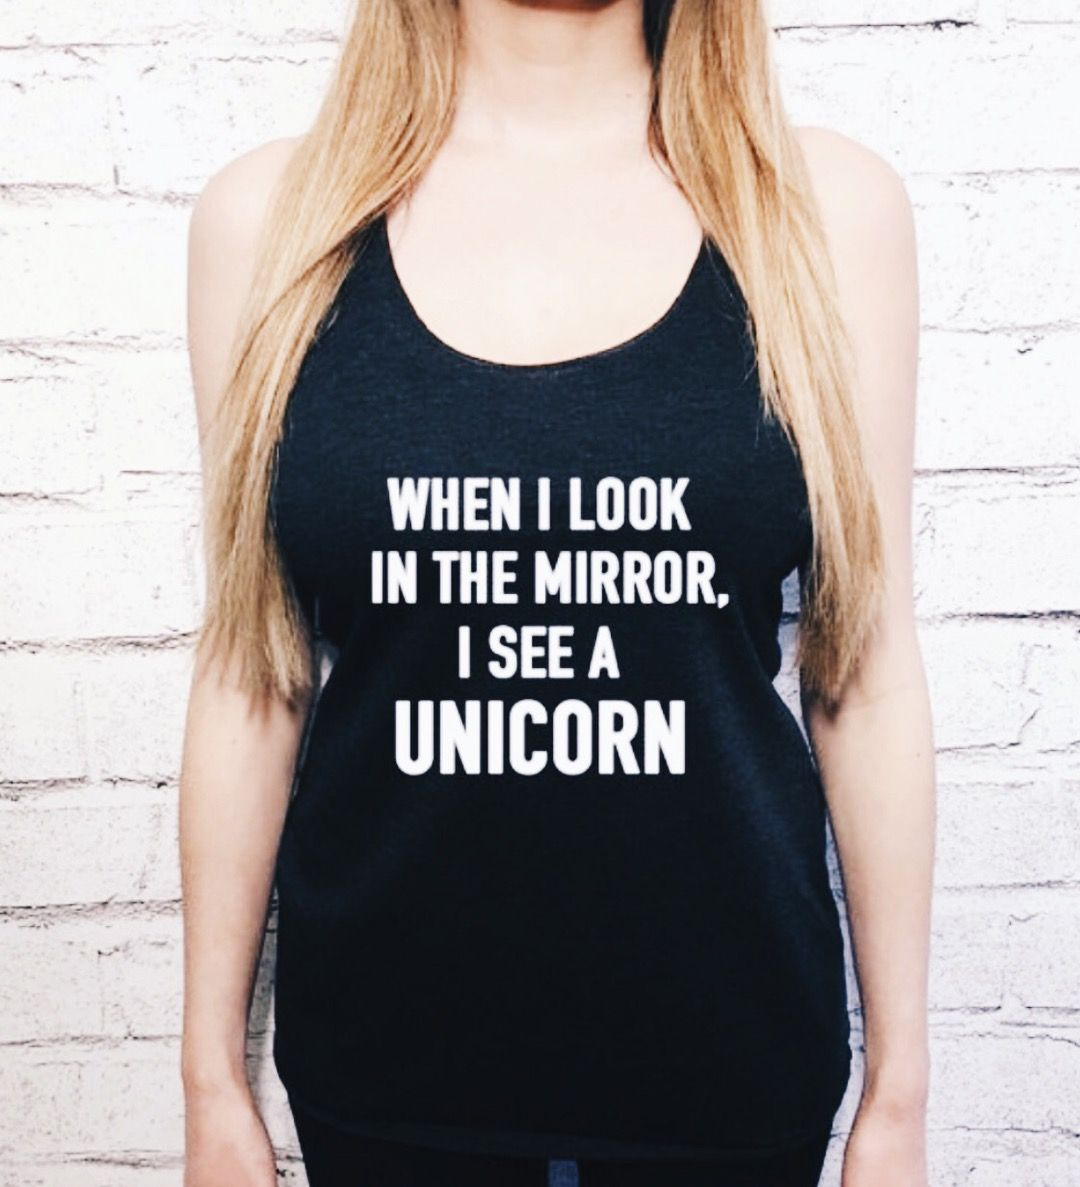 Love Quotes Clothing Nationalunicornday Unicorn Fashion Blogger Etsy Sundayfunday